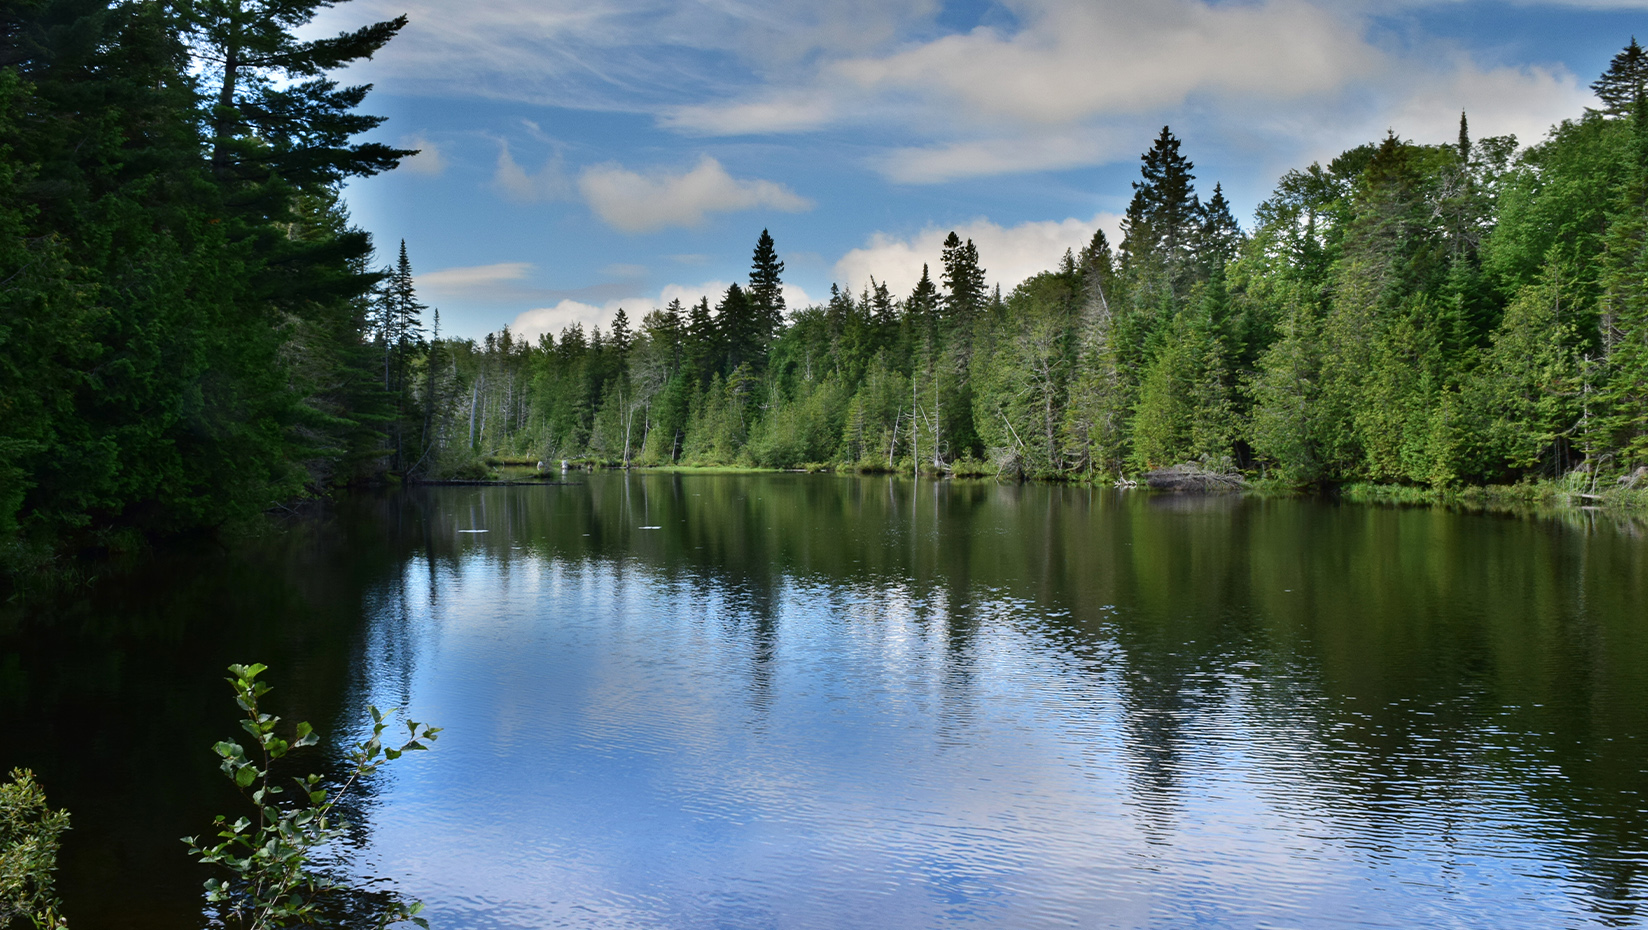 lake with a forested shoreline in Maine